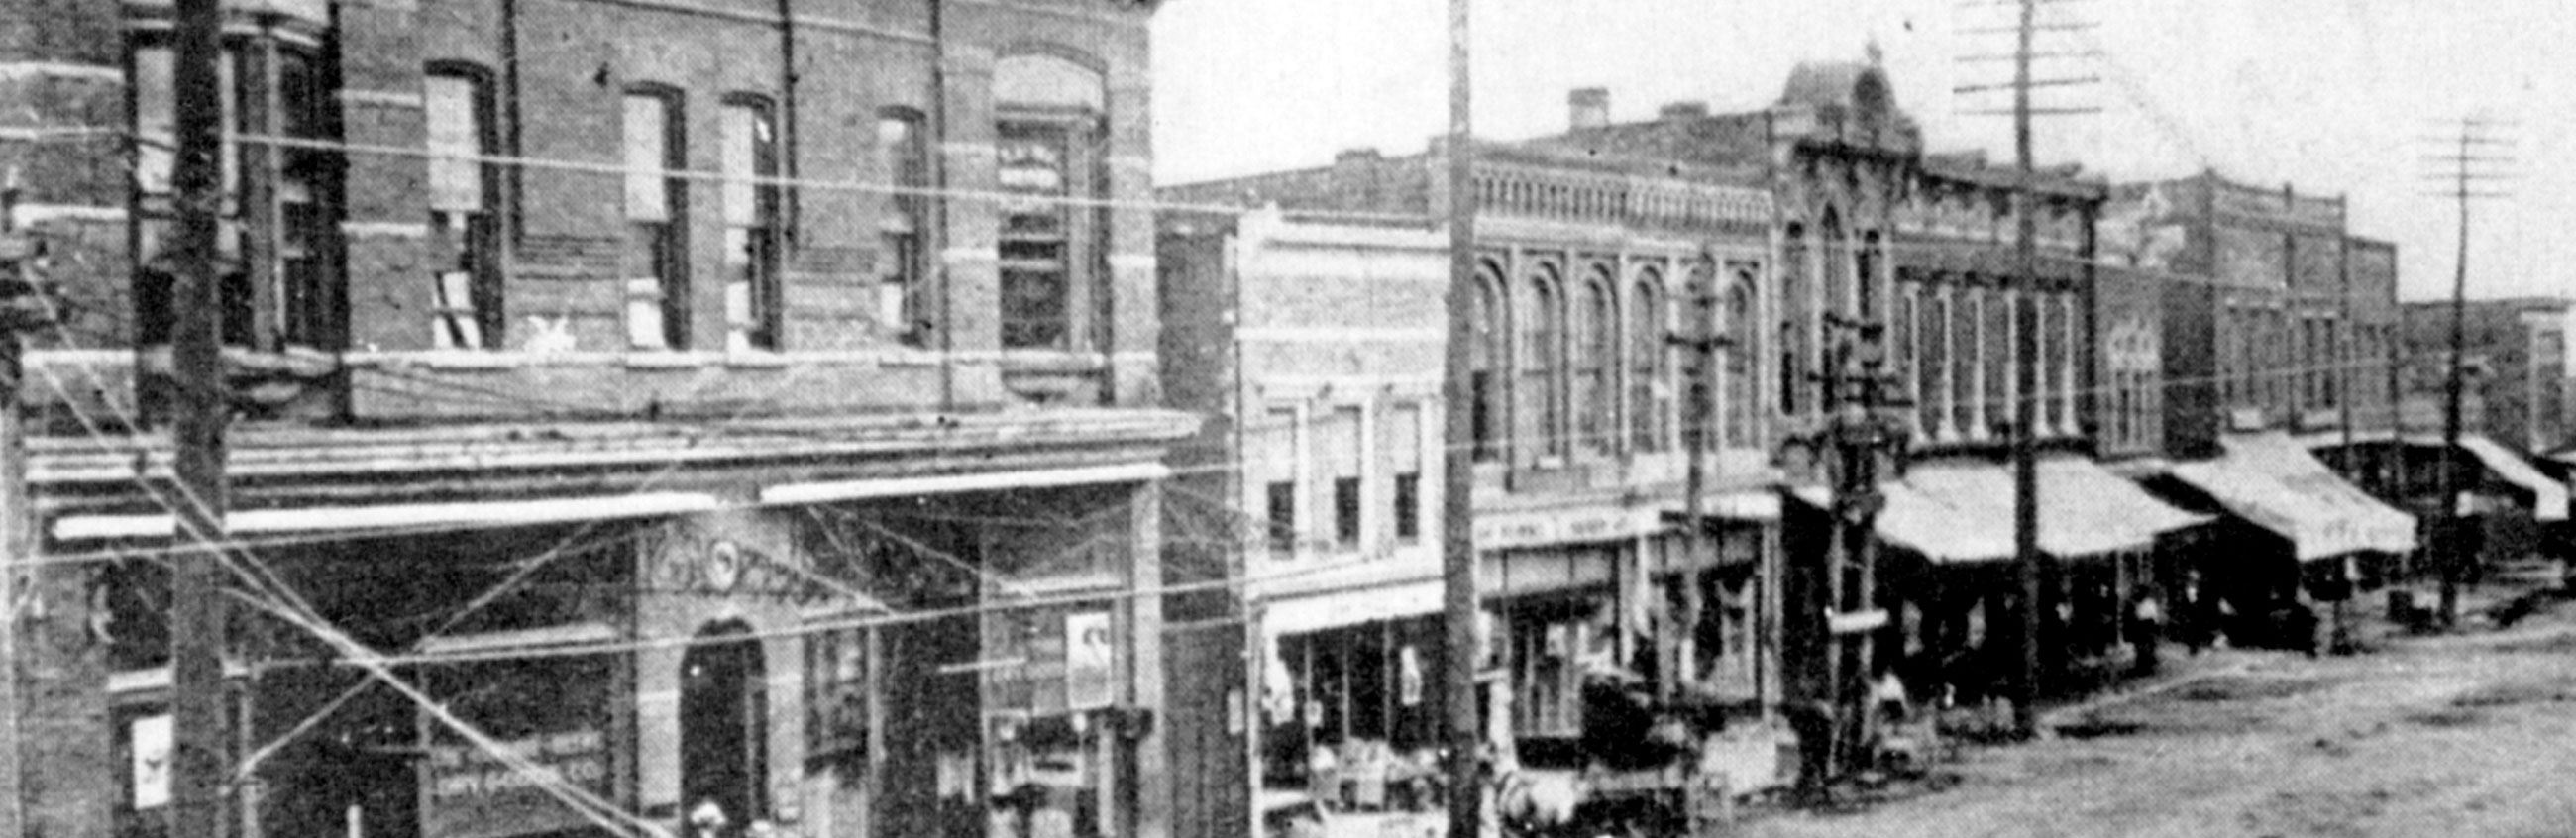 Downtown Gallatin in 1908